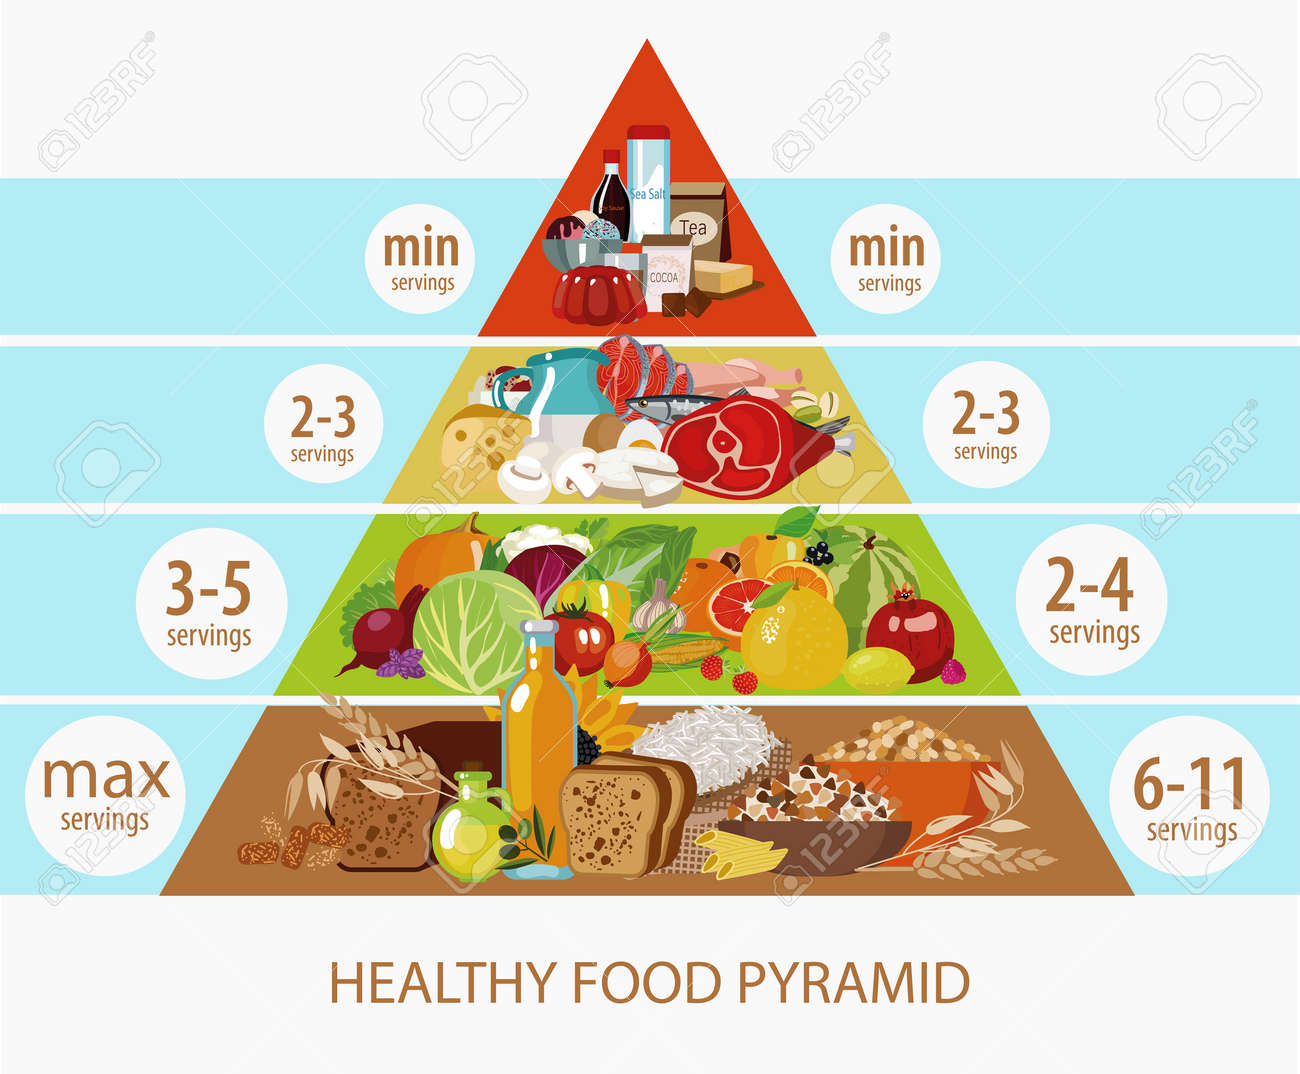 Food Pyramid Daily Intake Of Food The Recommended Number Of Royalty Free Cliparts Vectors And Stock Illustration Image 110886129